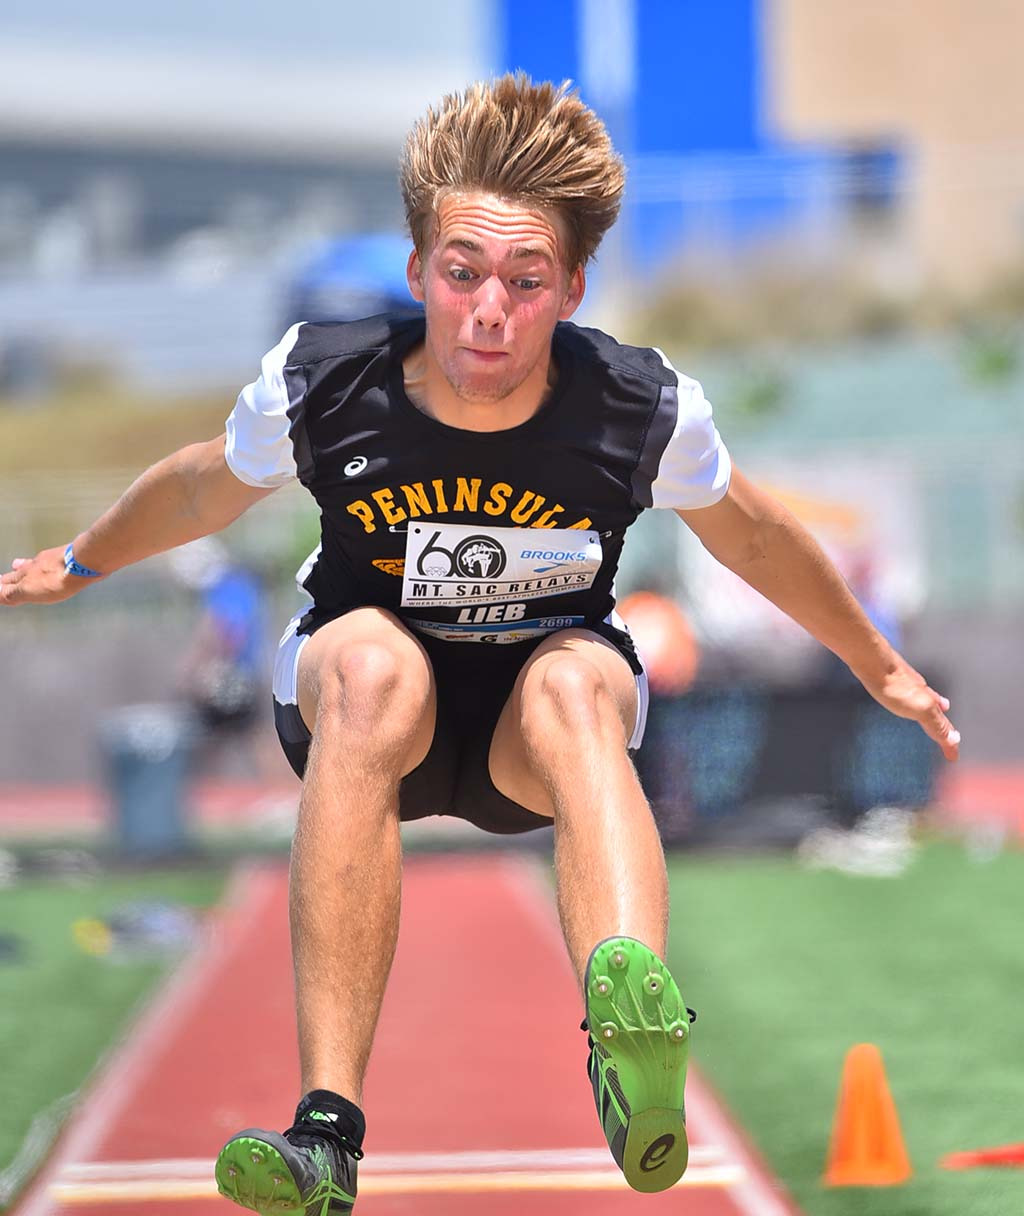 Aiden Lieb of Peninsula High School has a hair-raising land in the boys triple jump at the Mt. SAC Relays.